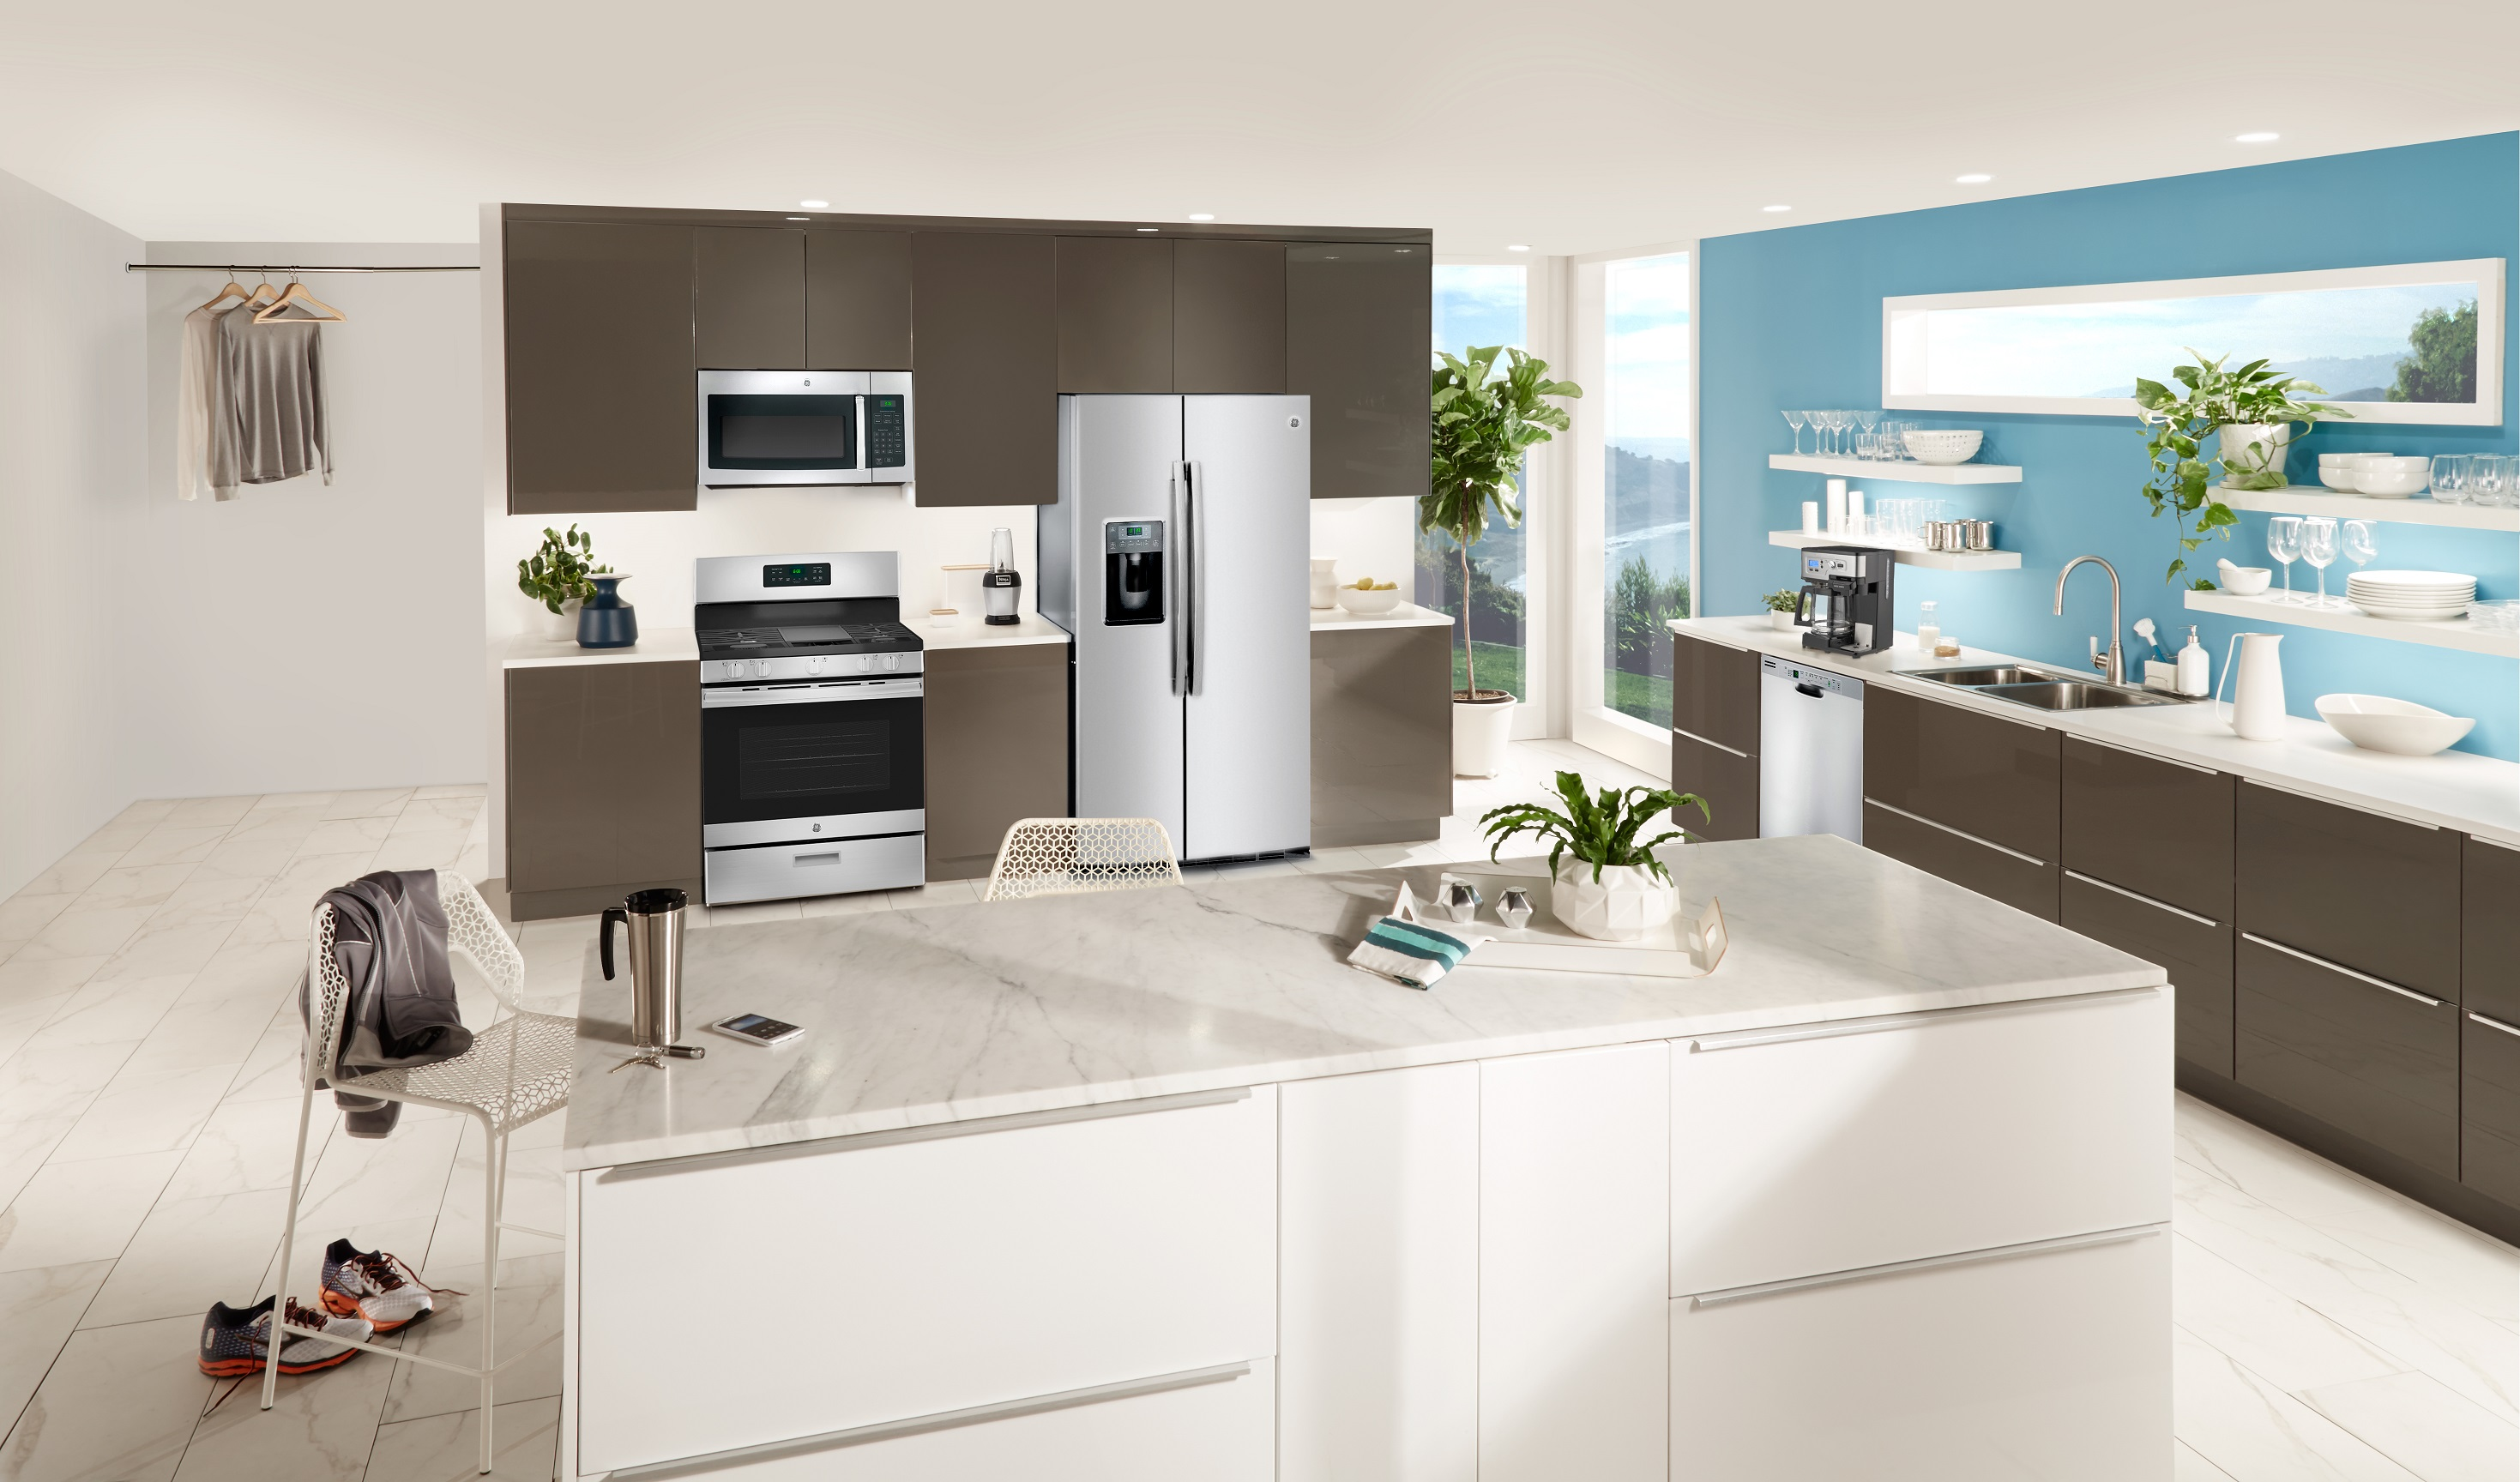 You Need New Appliances...And Best Buy Has Them